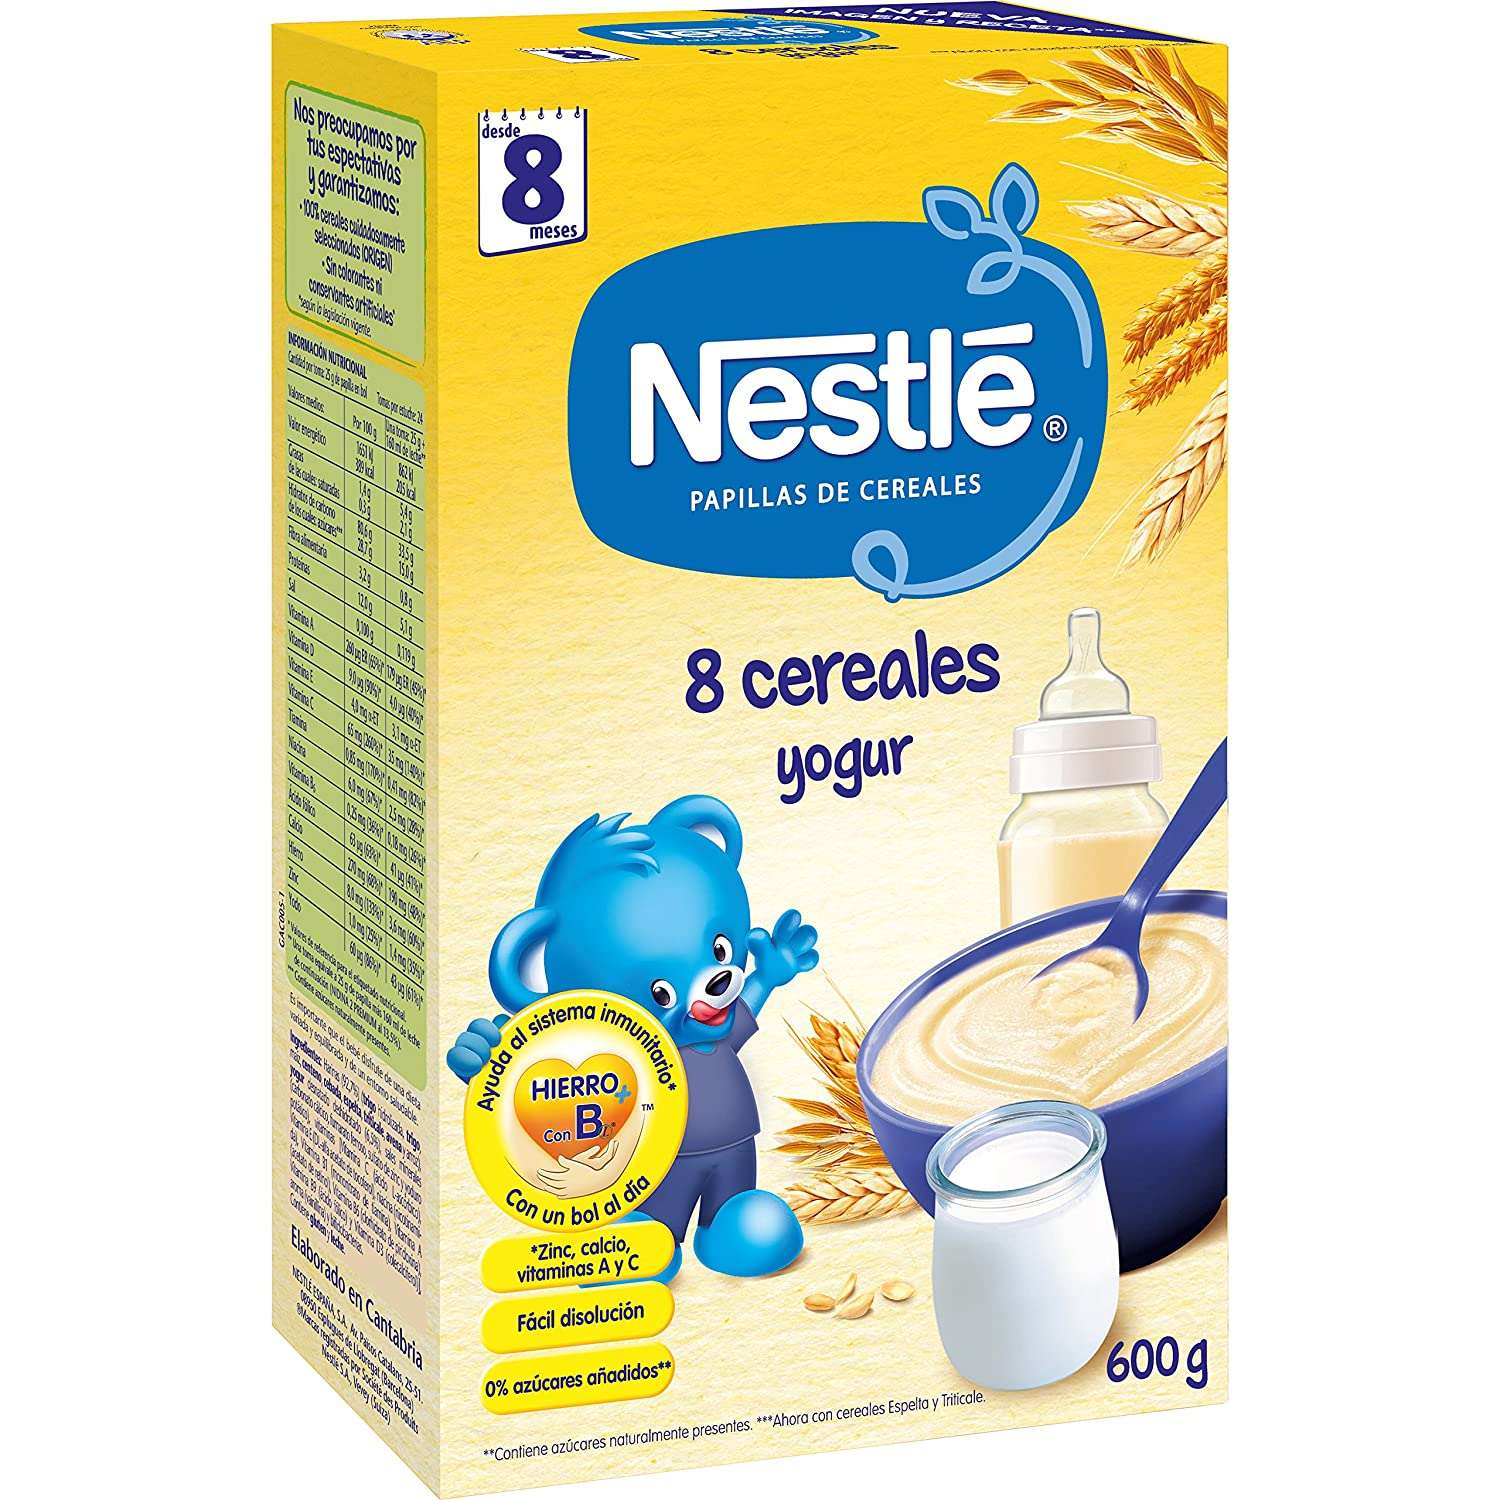 Amazon.com : Nestle Papilla 8 Cereales Con Yogur Y Bífidus : Grocery & Gourmet Food